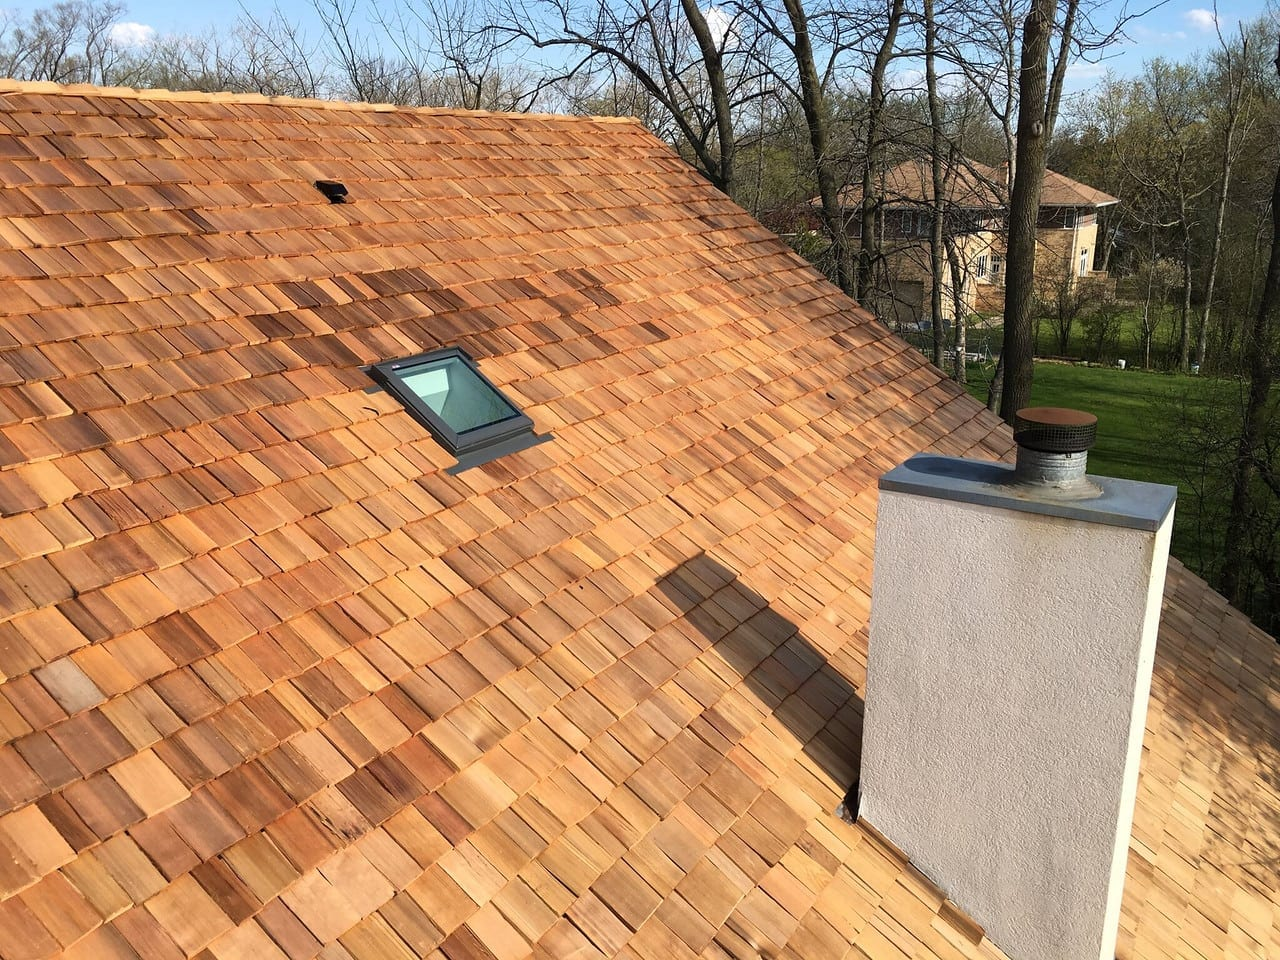 A.B. Edward Enterprises, Inc. is your top local cedar roofing company for installation, repair, and maintenance